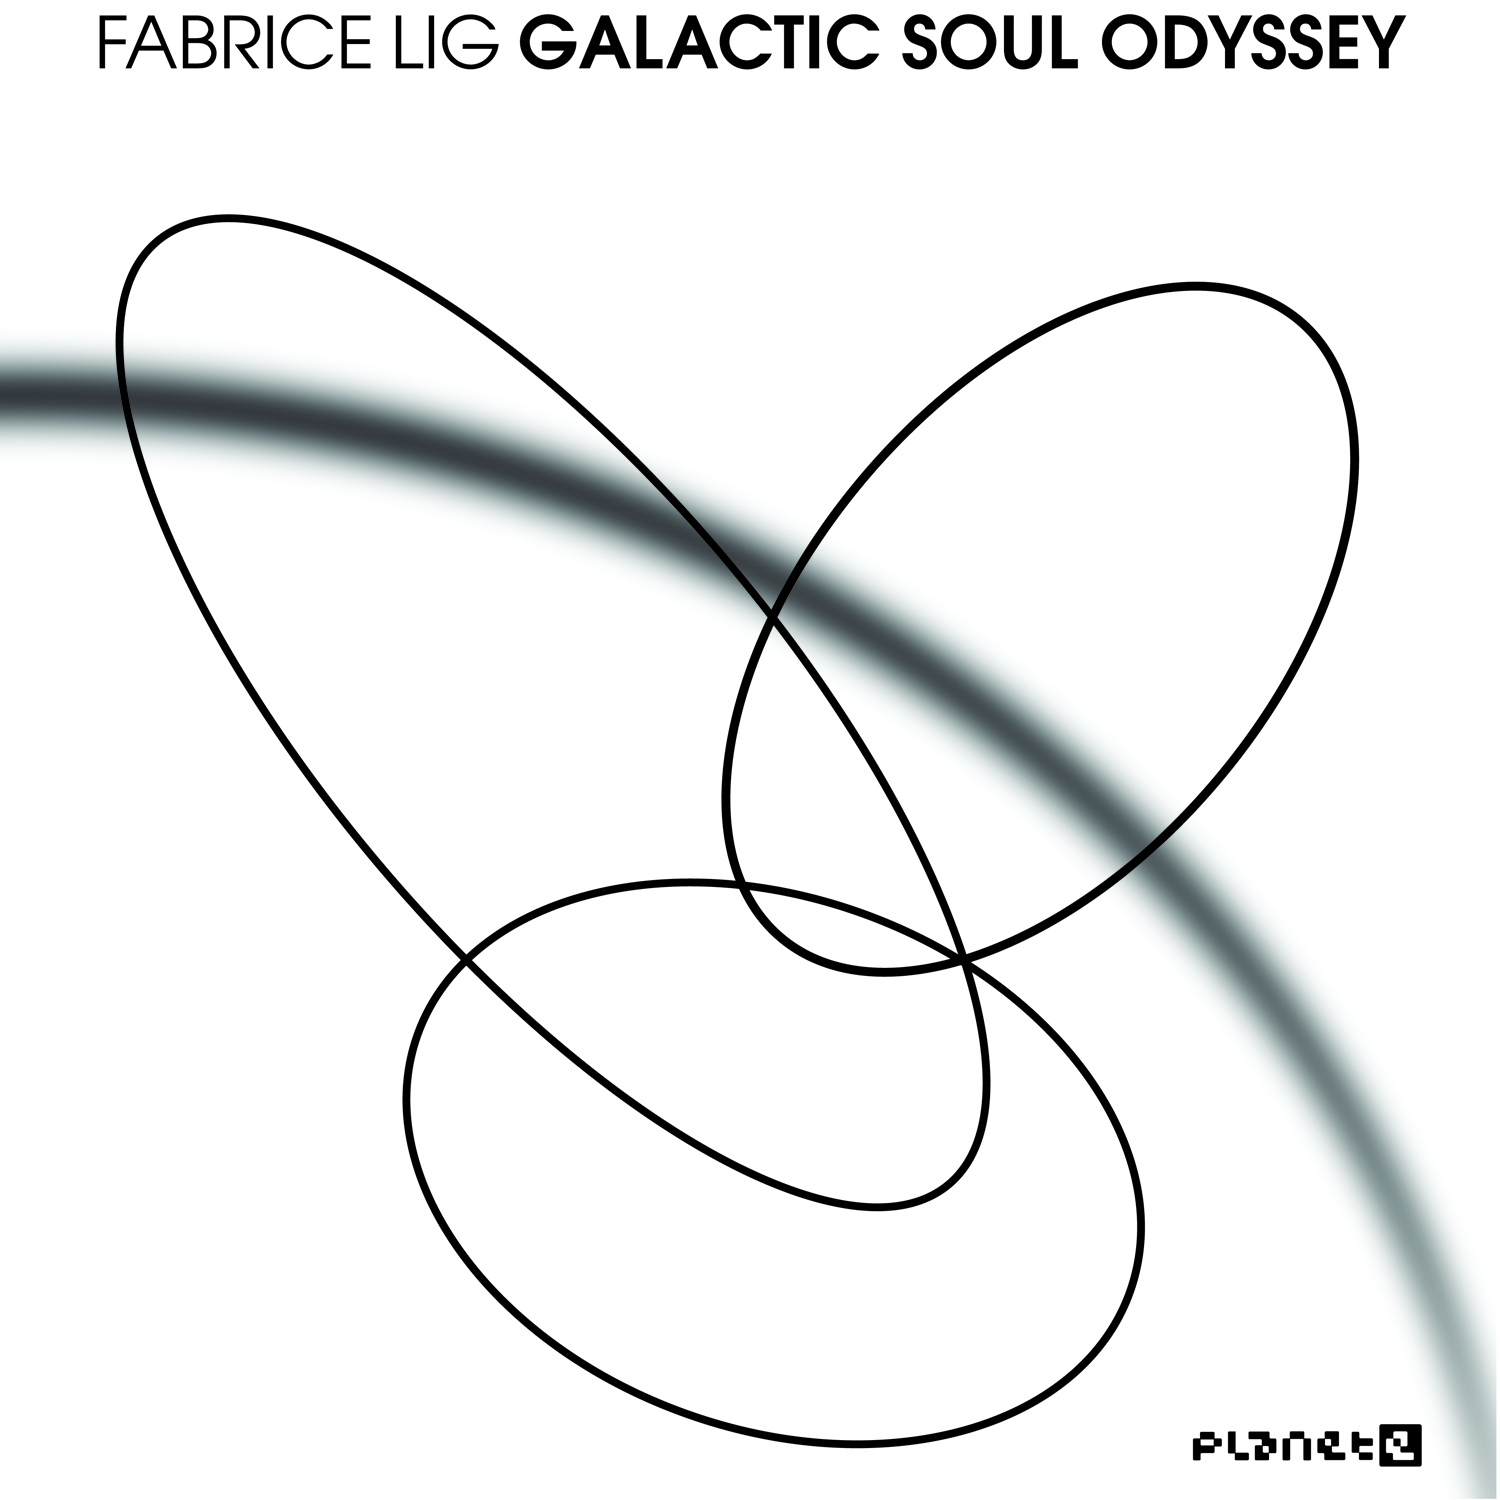 Fabrice Lig/GALACTIC SOUL ODYSSEY CD